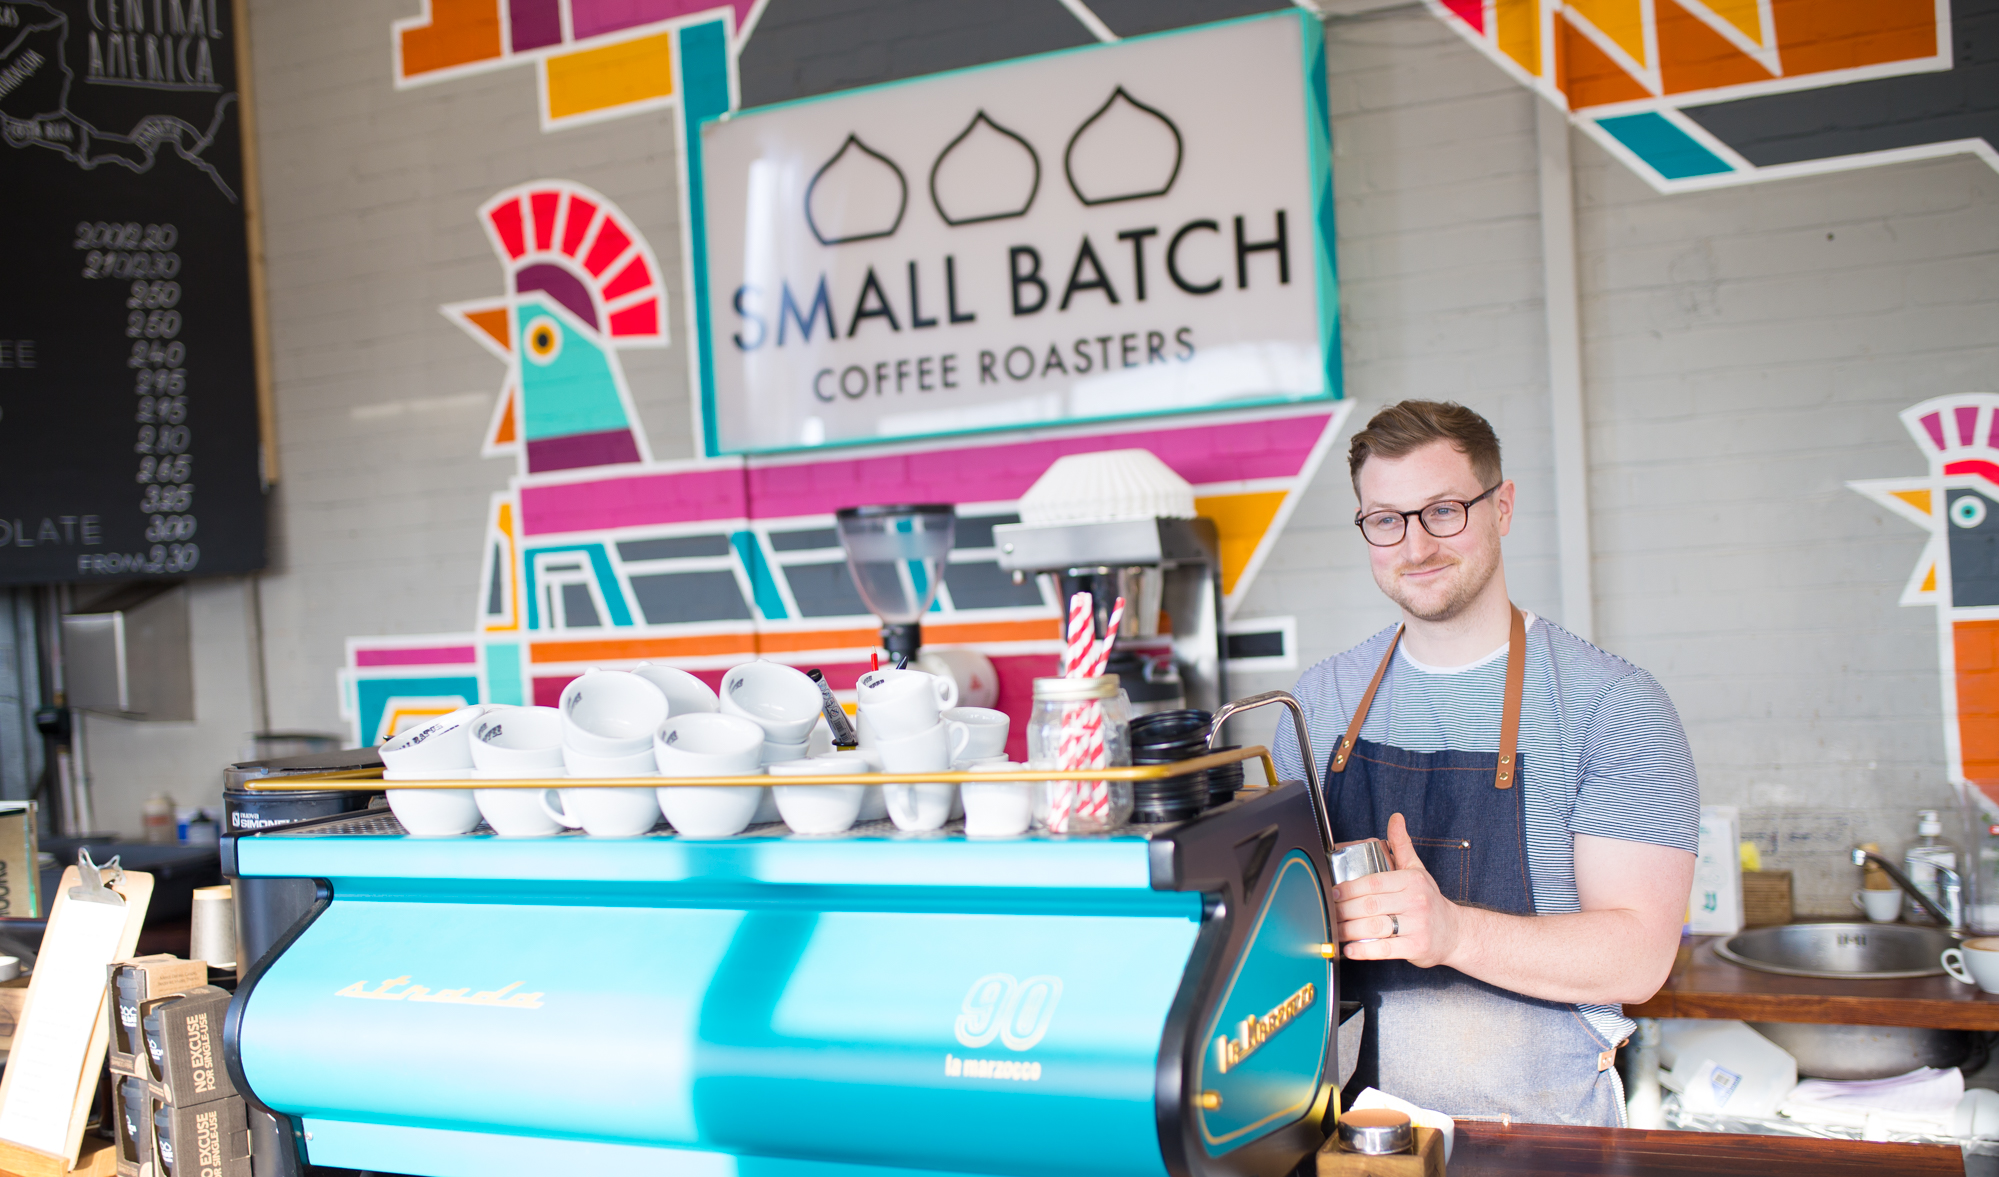 Small Batch Coffee 2018 COPYRIGHT Nick Harvey www.restaurantsbrighton.co.uk_8976.jpg